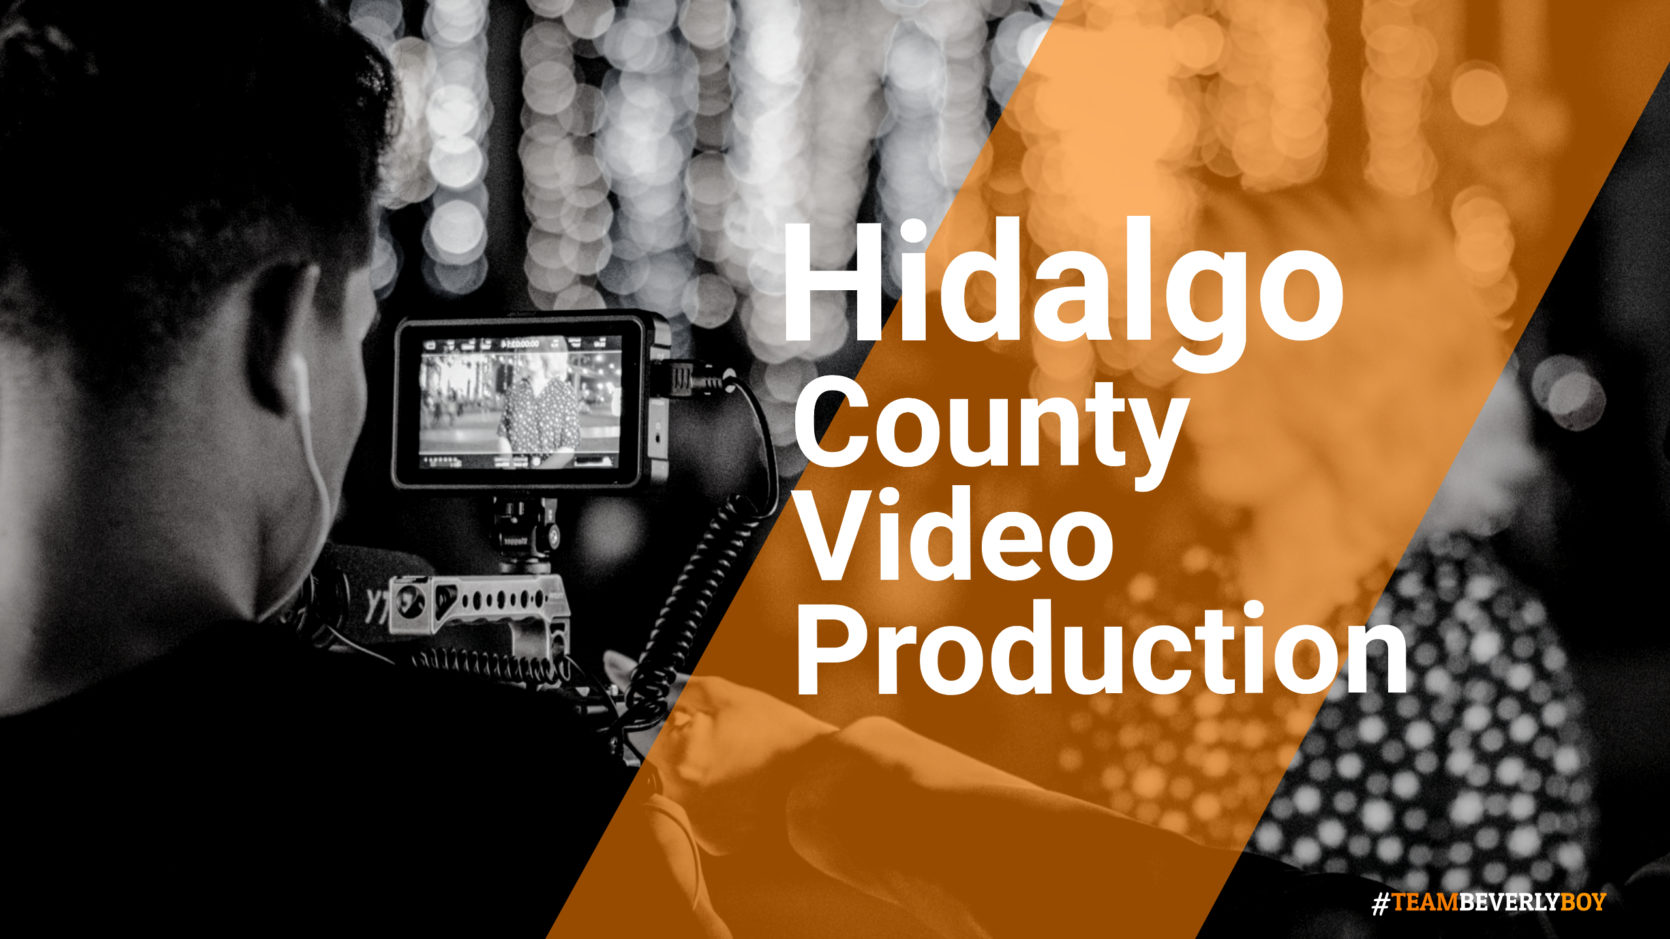 Hidalgo county video production